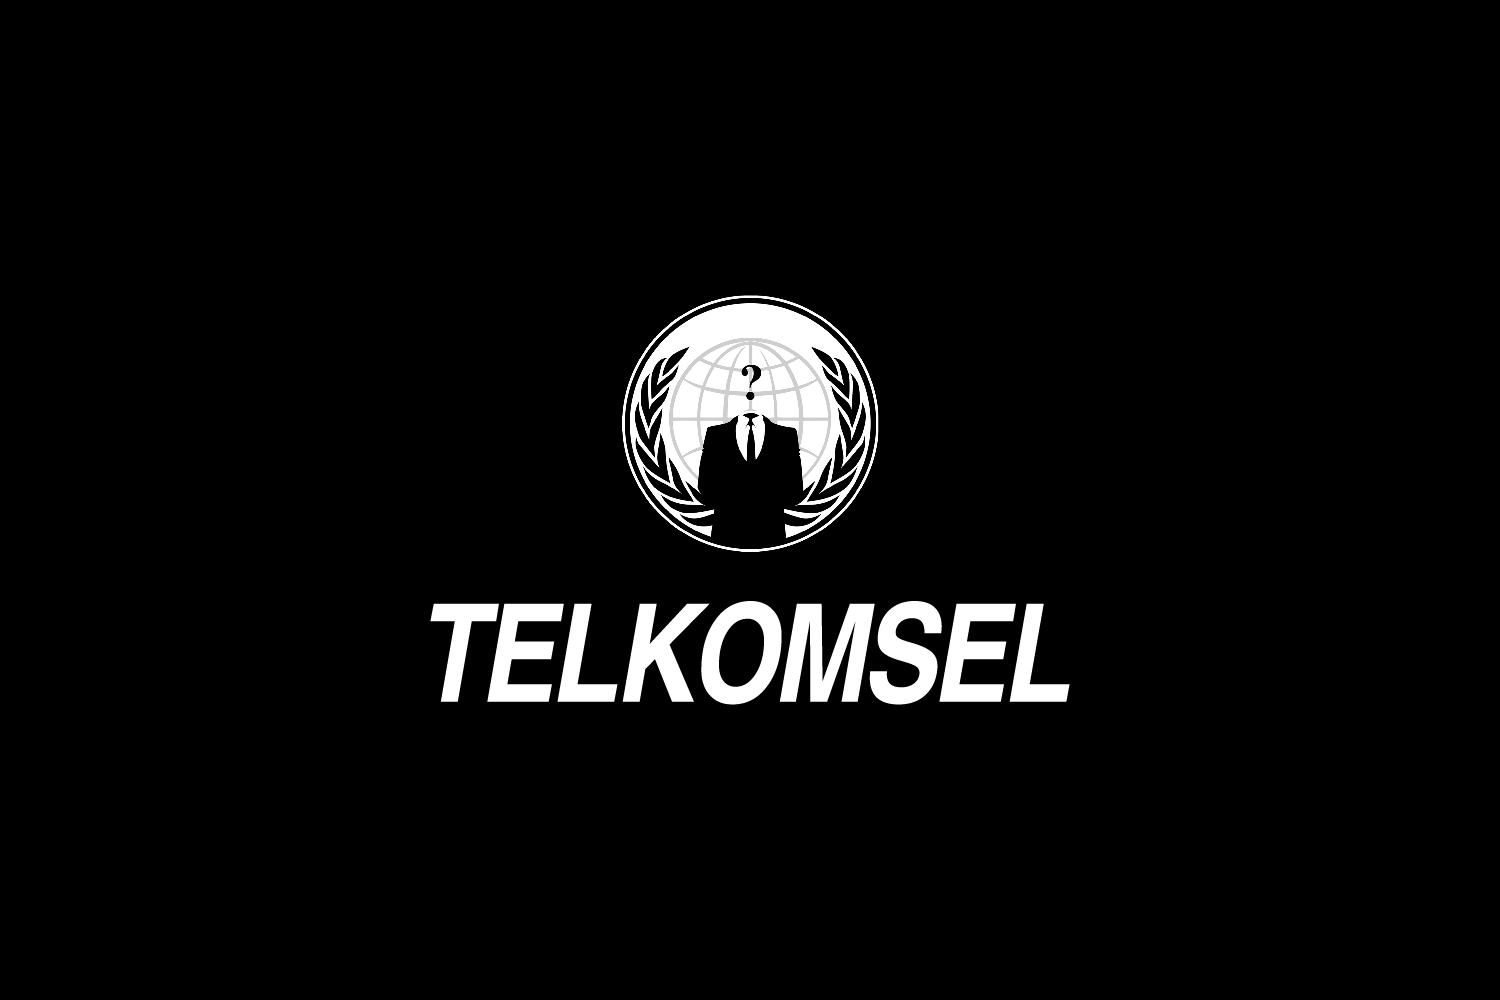 telkomsel organizational design Wit creative is a full service creative firm dedicated in injecting creativity to your brand we do branding, graphic design and digital advertising services.